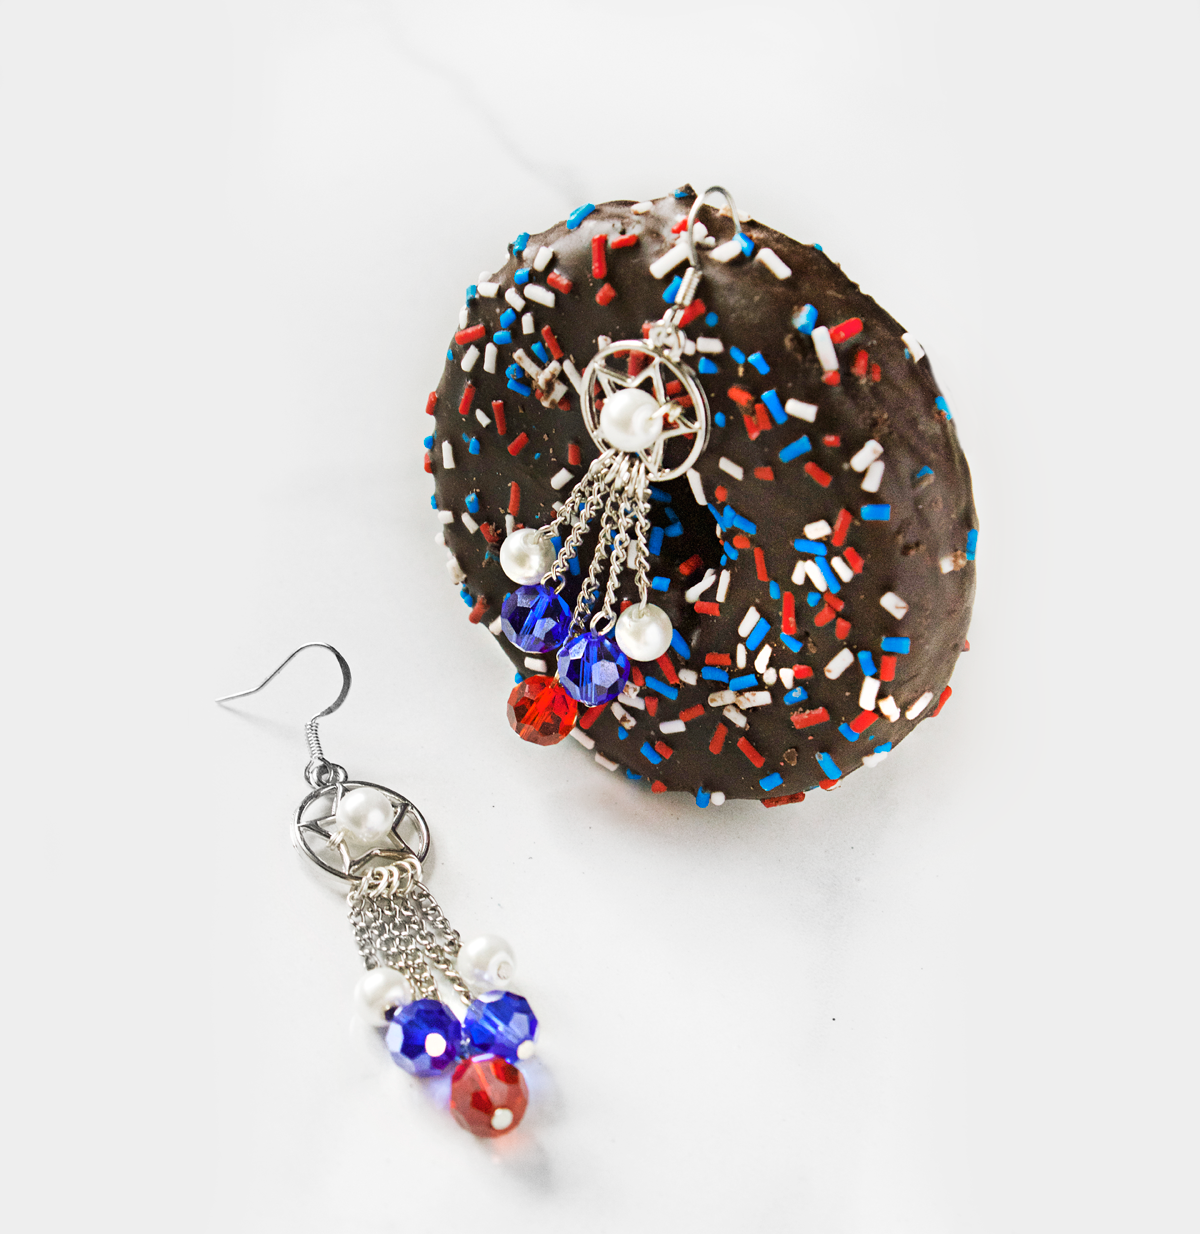 beaded earrings tutorial by Allison Beth Cooling using Cousin Corporation beads